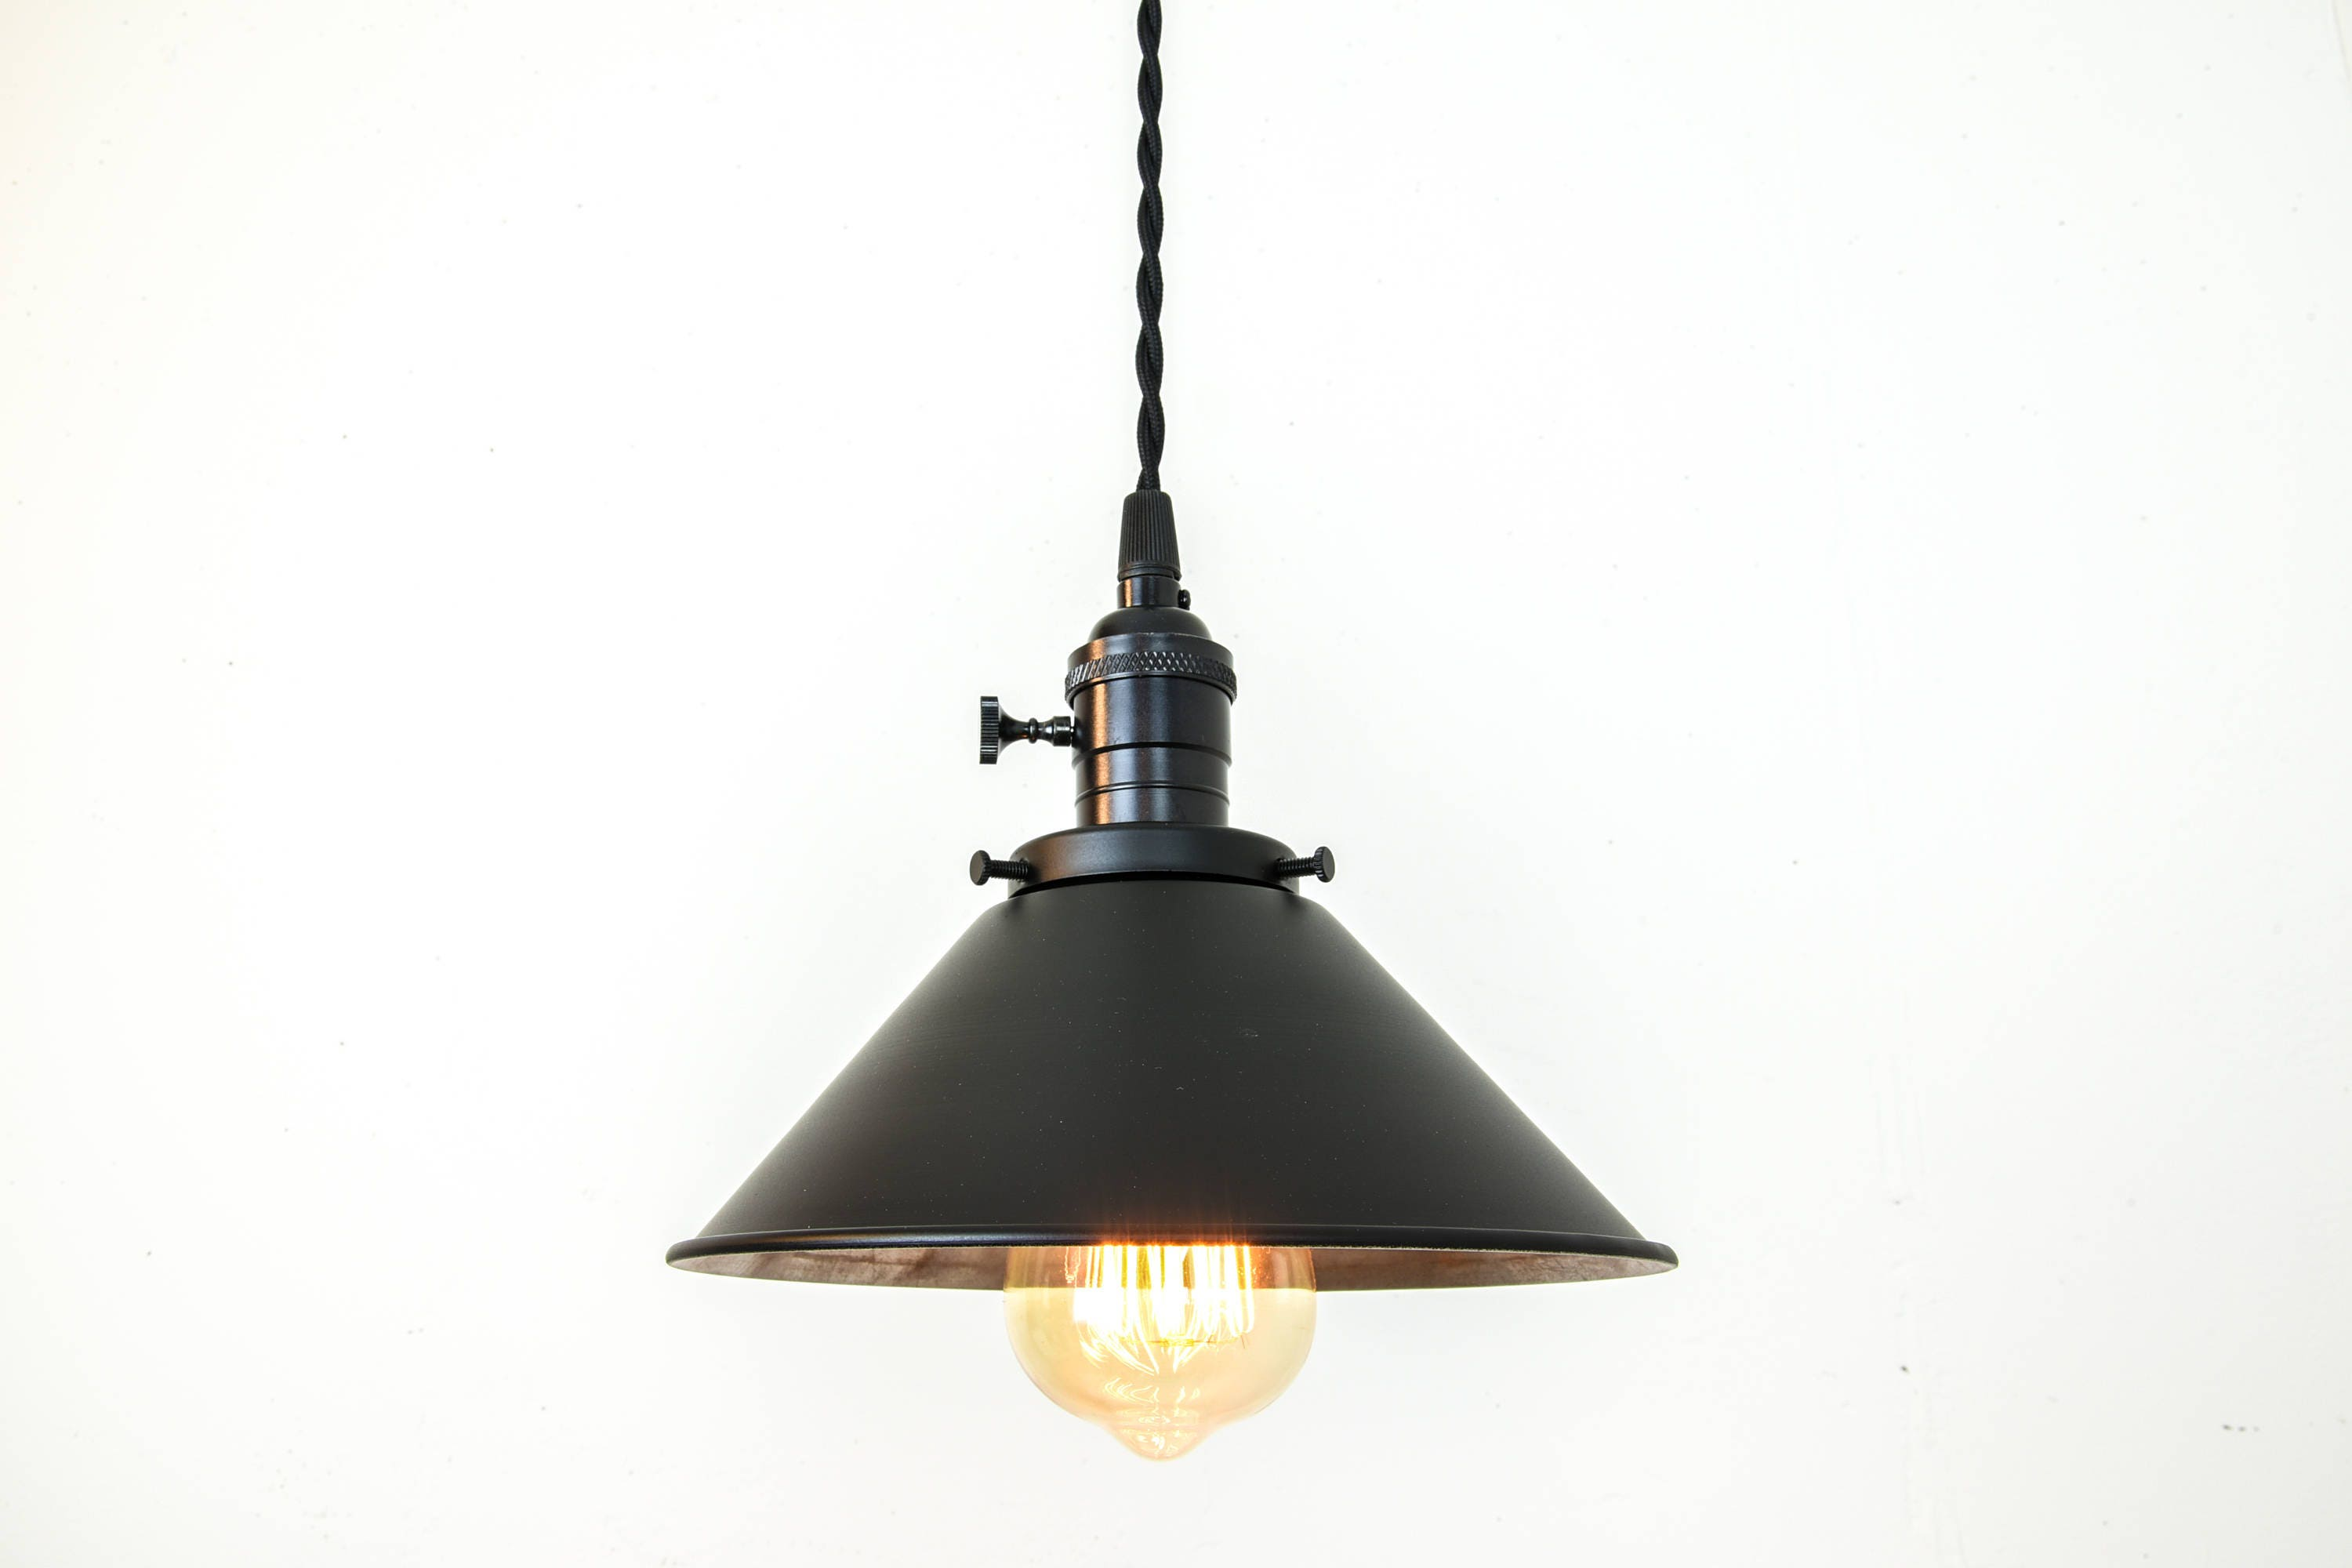 pendant rustic art light black products steel fdad metal unitarylighting shade